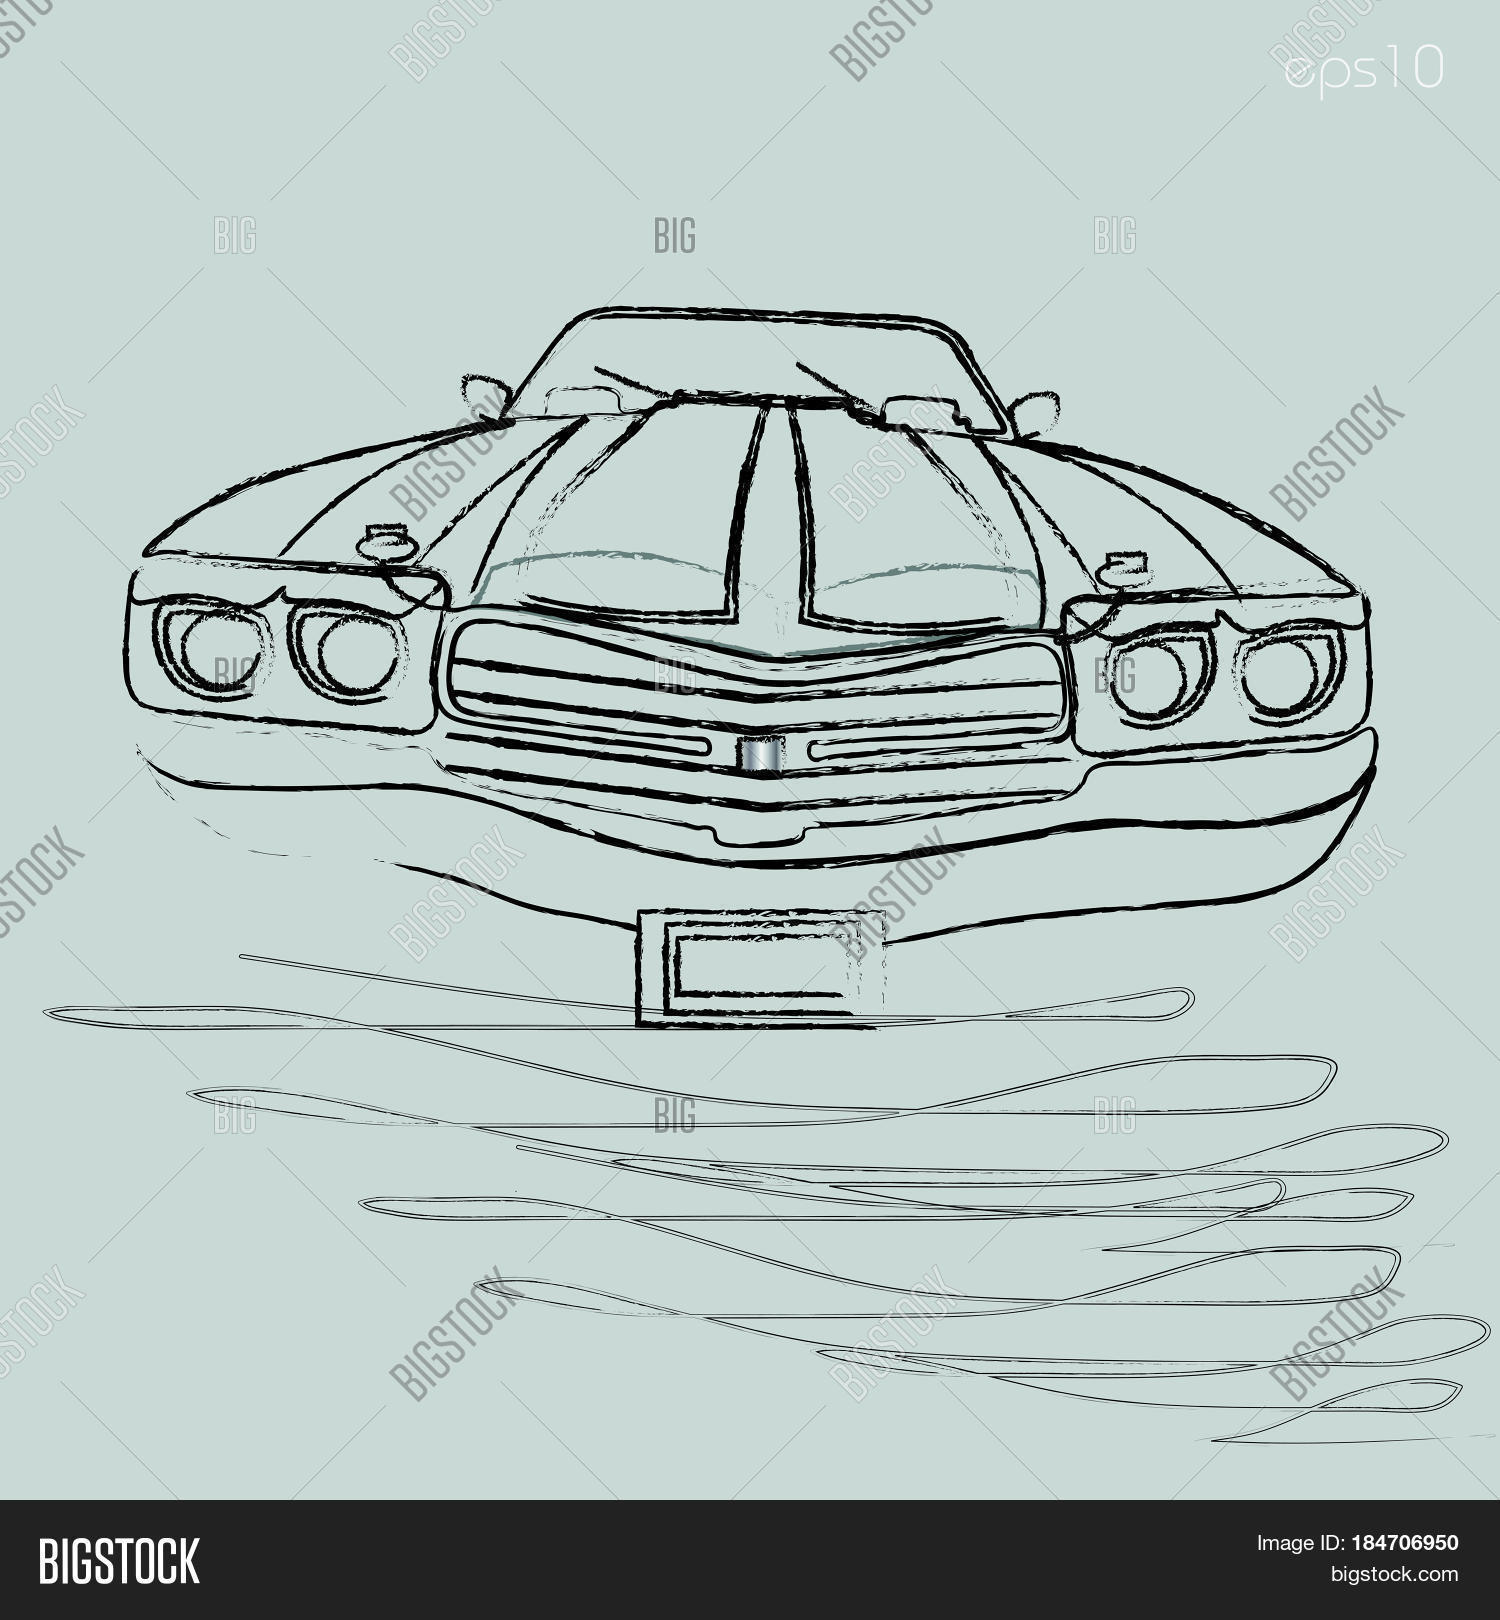 Car Front View Drawing at GetDrawings.com | Free for personal use ...